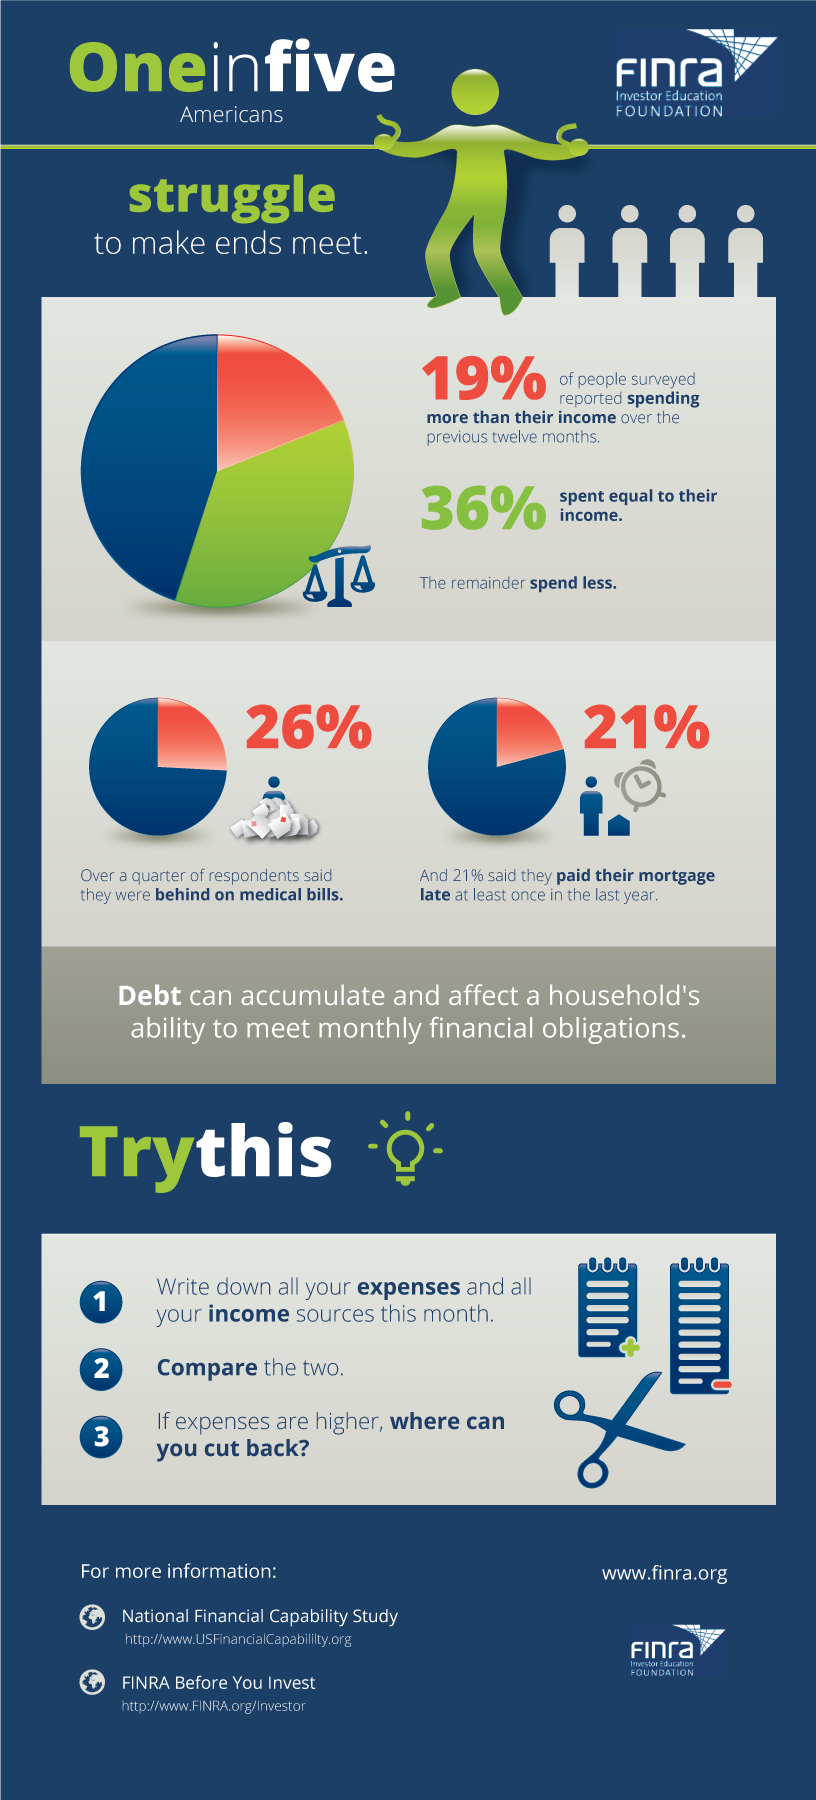 Making Ends Meet - Controlling Debt